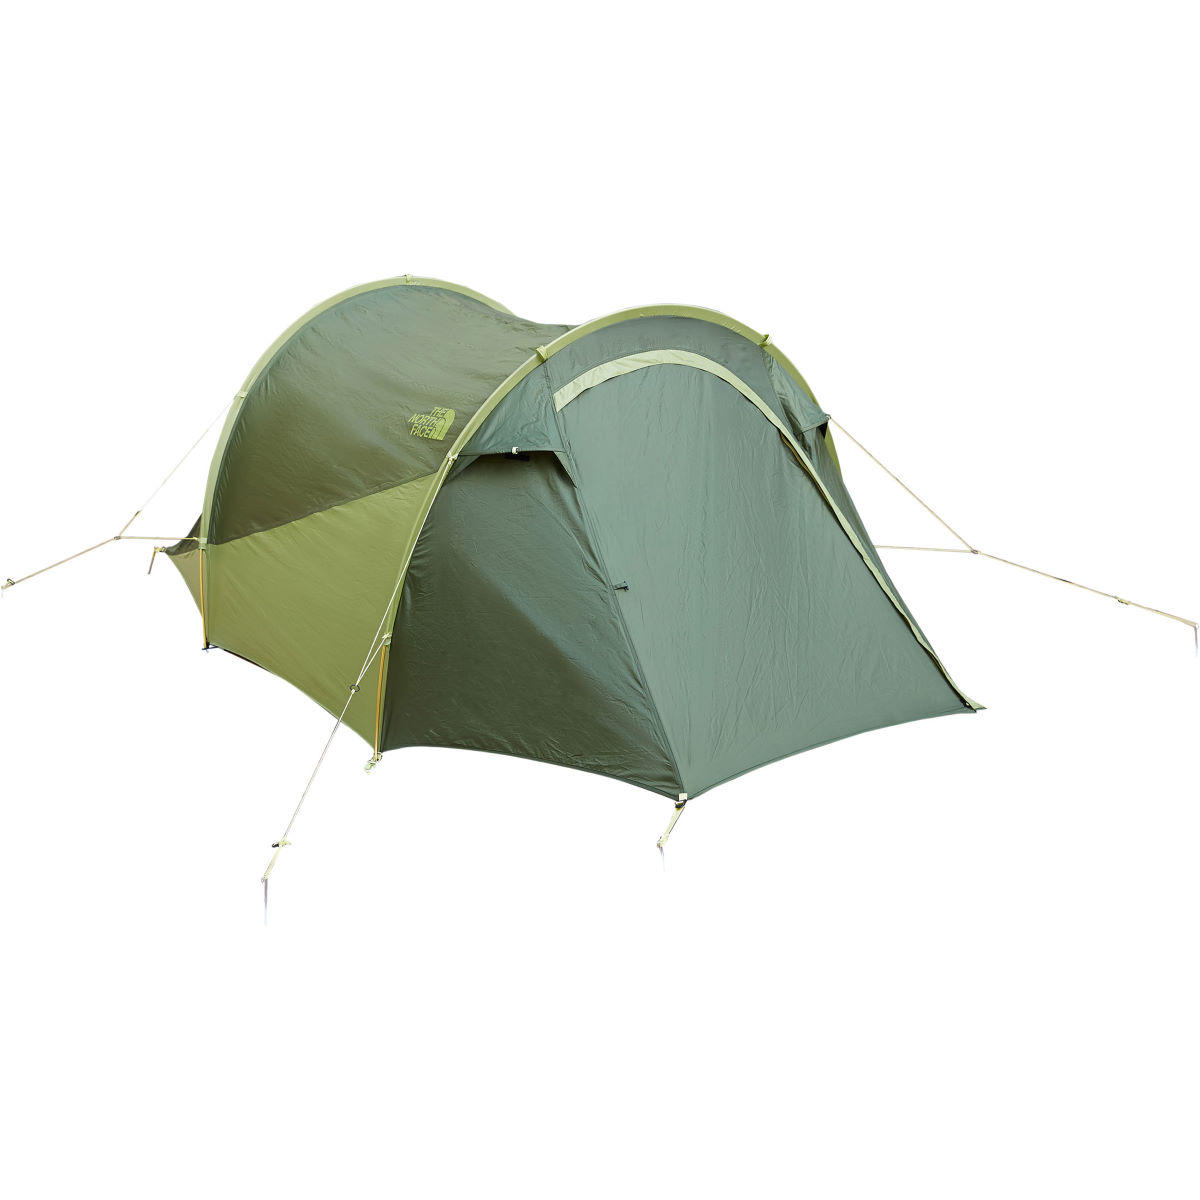 The North Face The North Face Heyerdahl 3 Person Tent   Tents